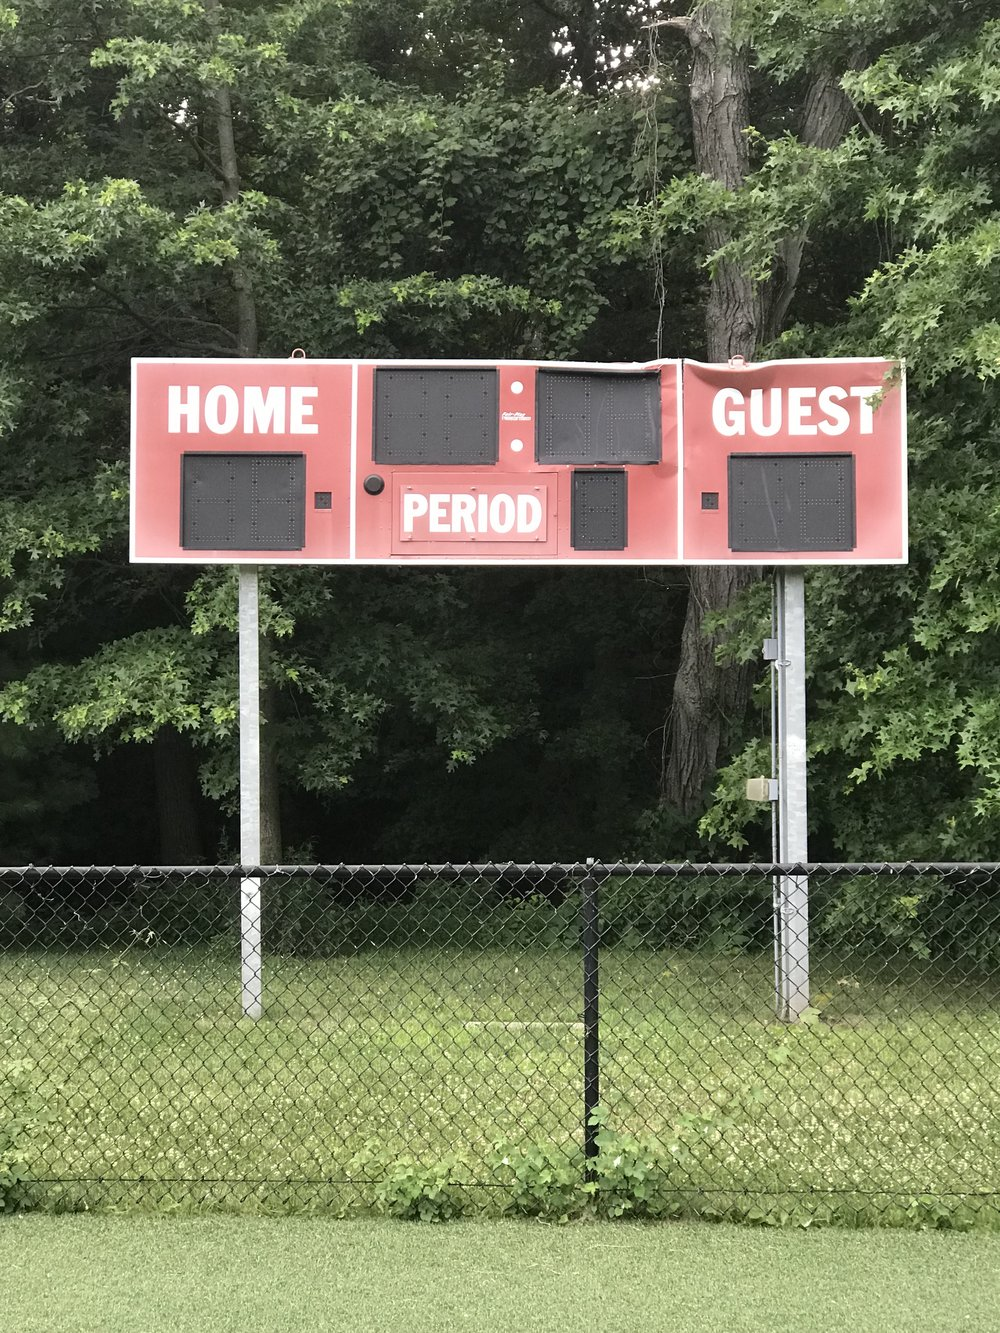 GHS Baseball & Practice Field Scoreboards - We are also working on raising money to replace older scoreboards at the Greenwich High School campus. Some are outdated or damaged beyond repair.Click HERE to donate to scoreboard repairs!